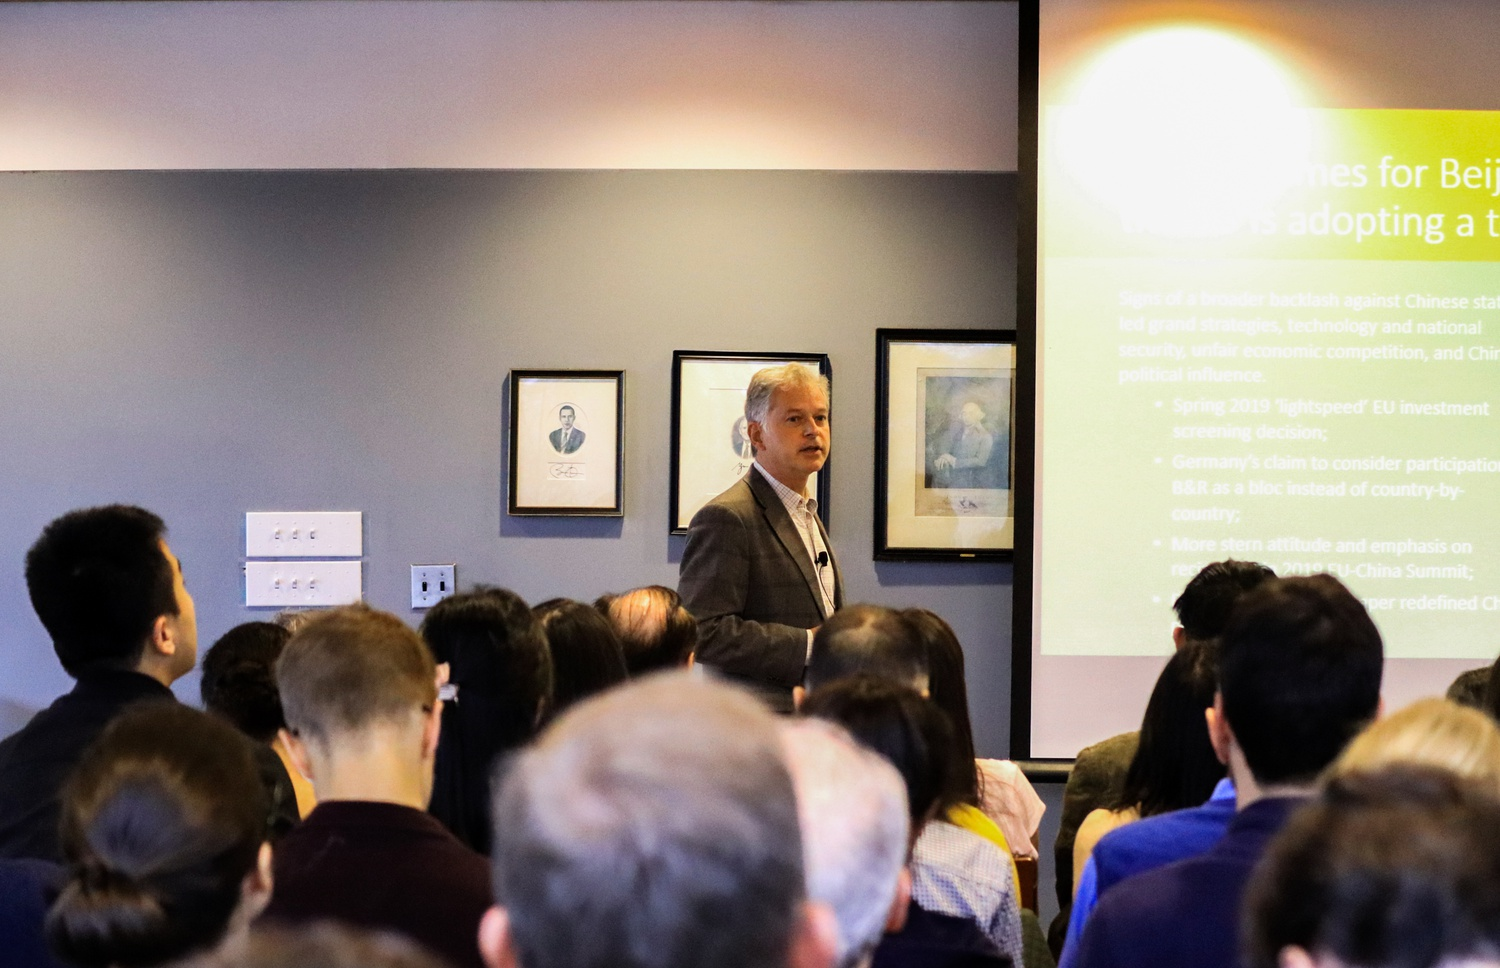 Philippe Le Corre, research associate at the Ash Center for Democratic Governance and Innovation and Mossavar-Rahmani Center for Business and Government speaks about the impact of China's Belt and Road Initiatives at the Harvard Kennedy School Tuesday.